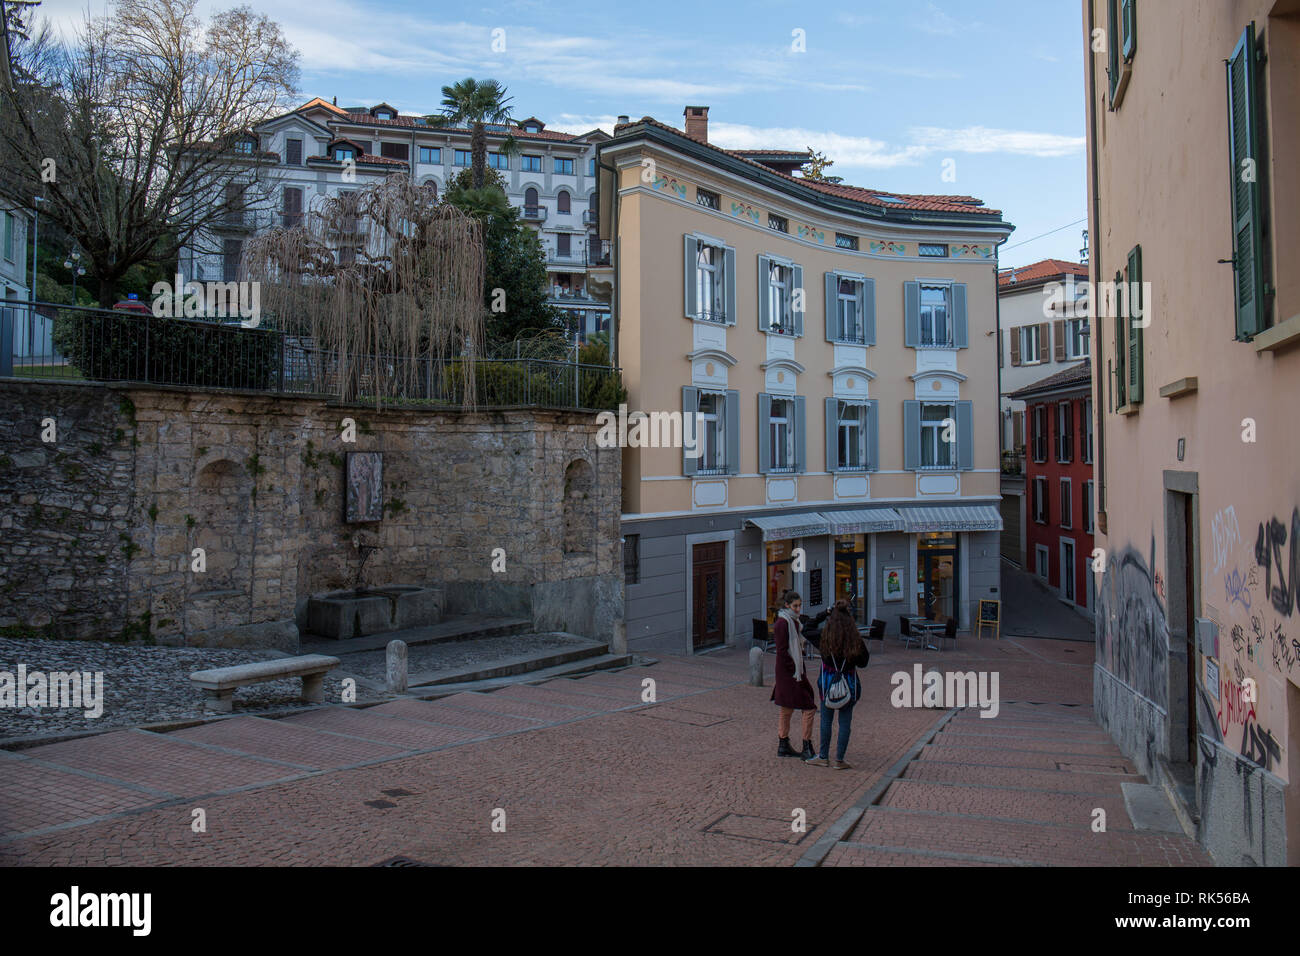 Old houses and shops in the city centre of Lugano Stock Photo